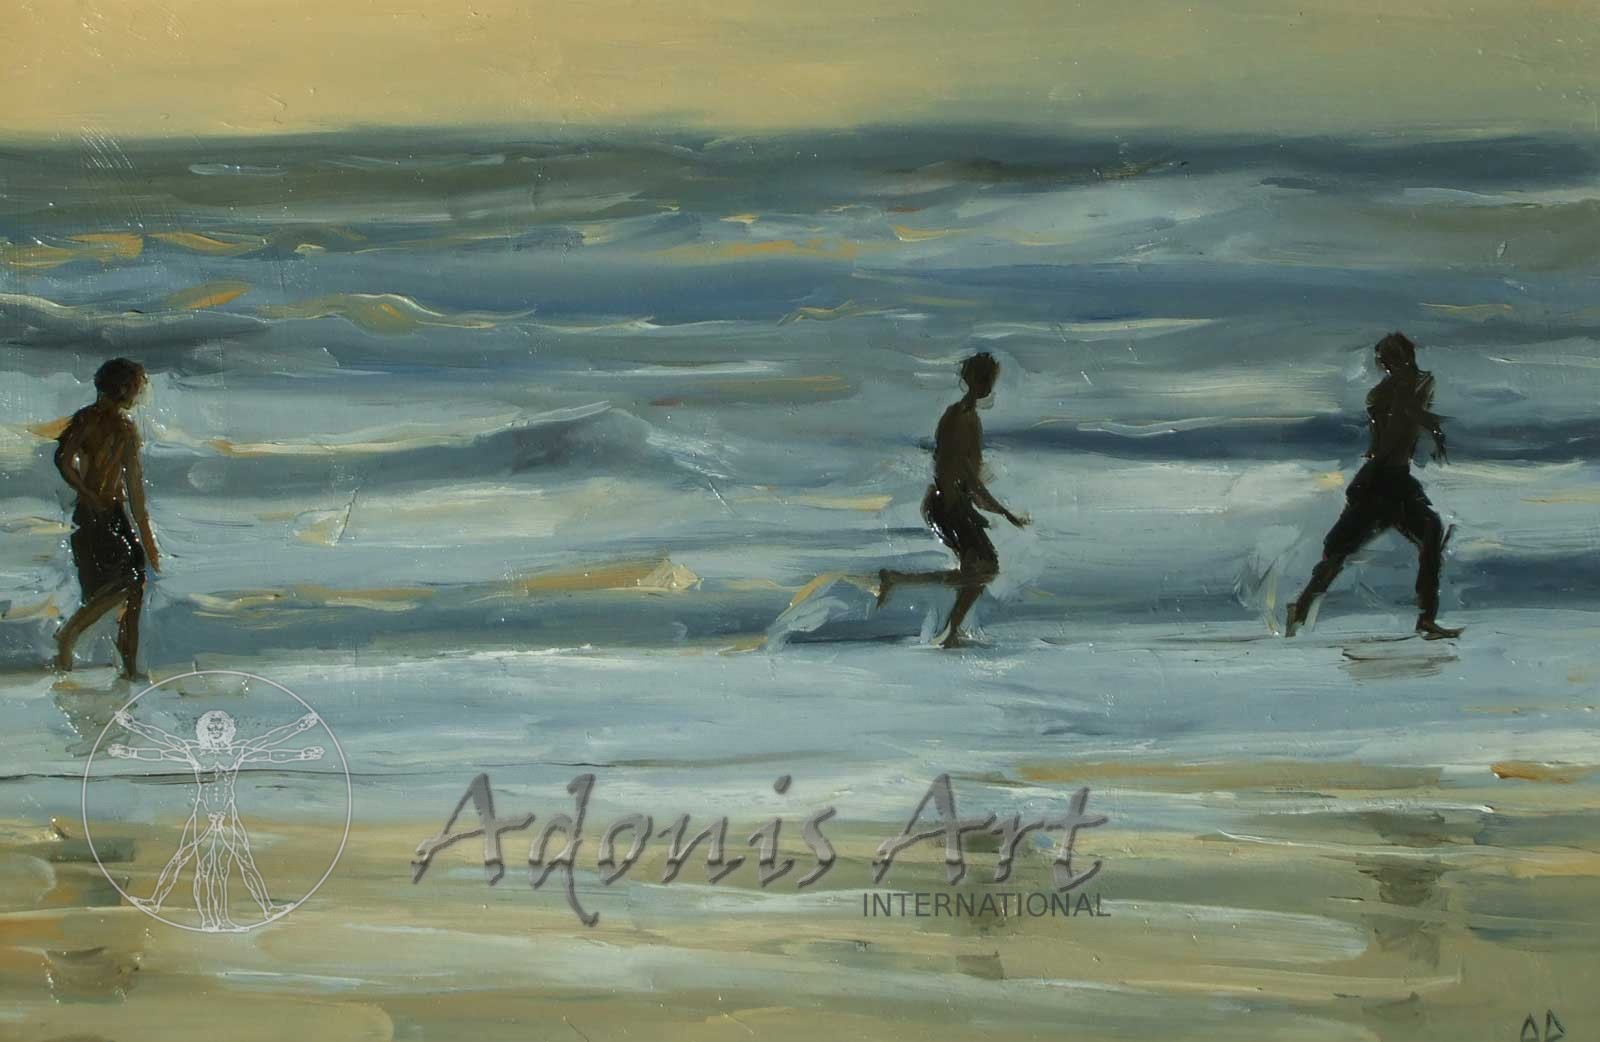 'Running against the Tide' by David Ambrose